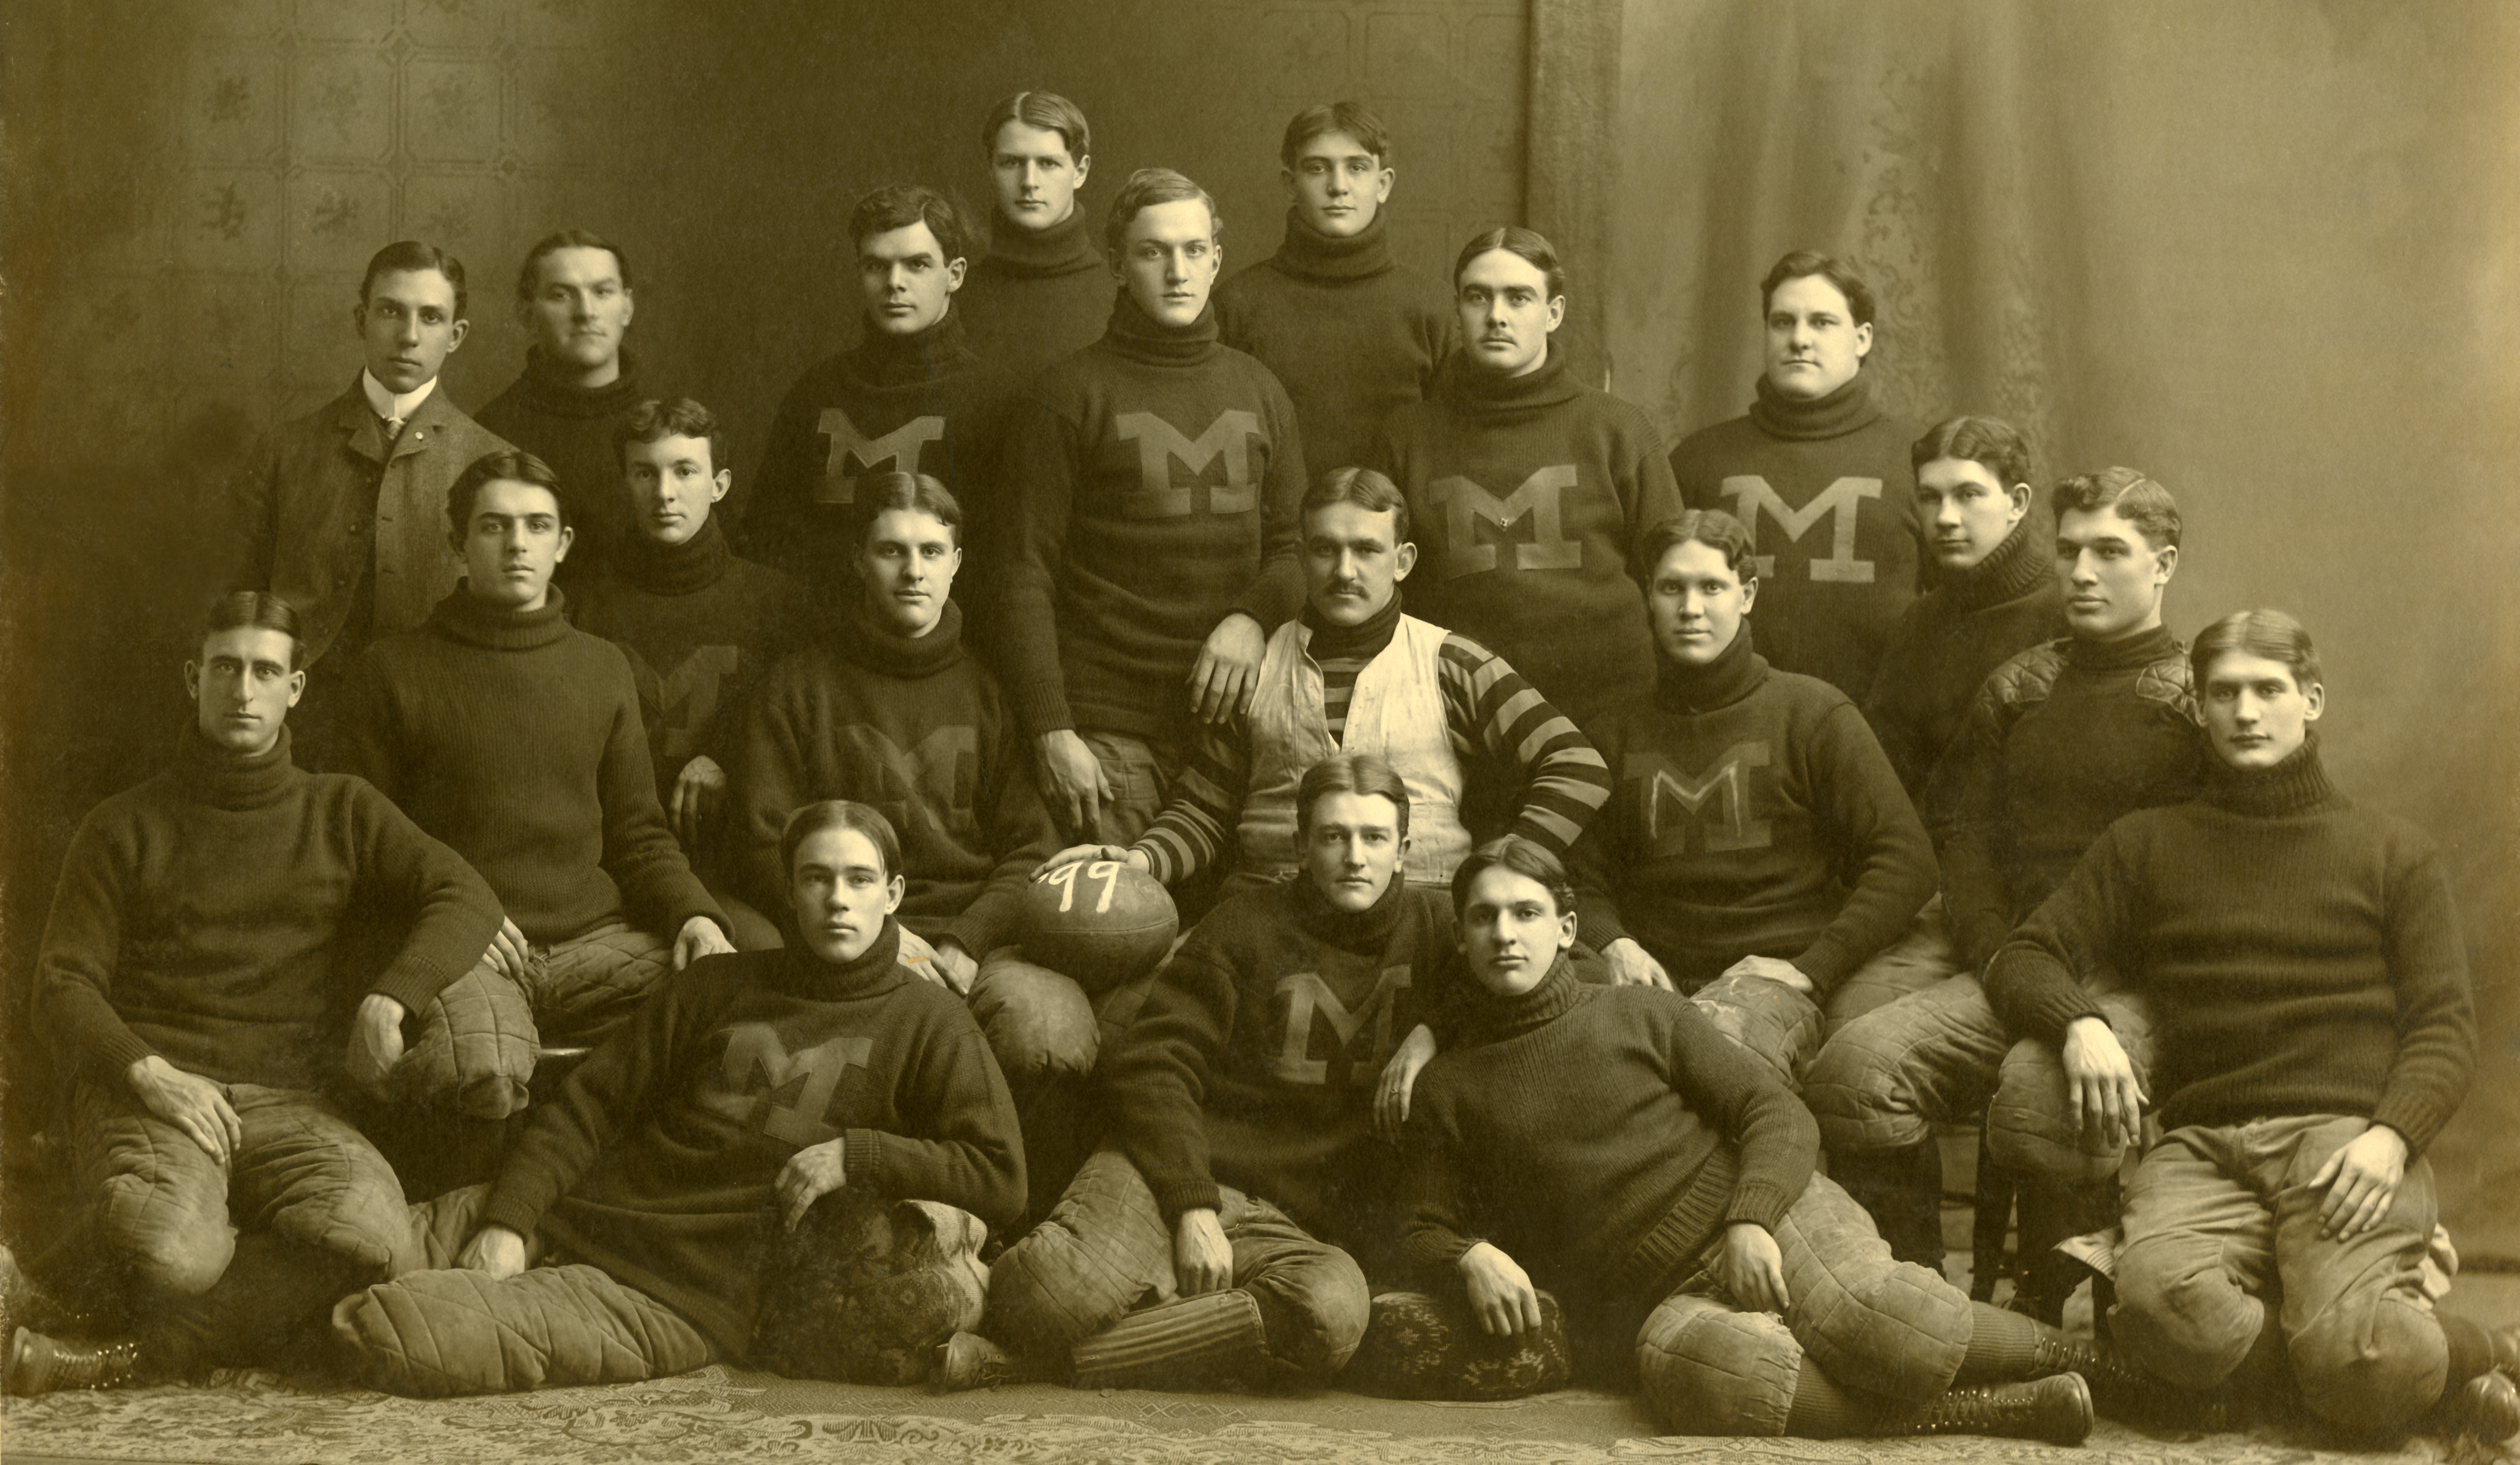 File:1899 Michigan Wolverines football team.jpg